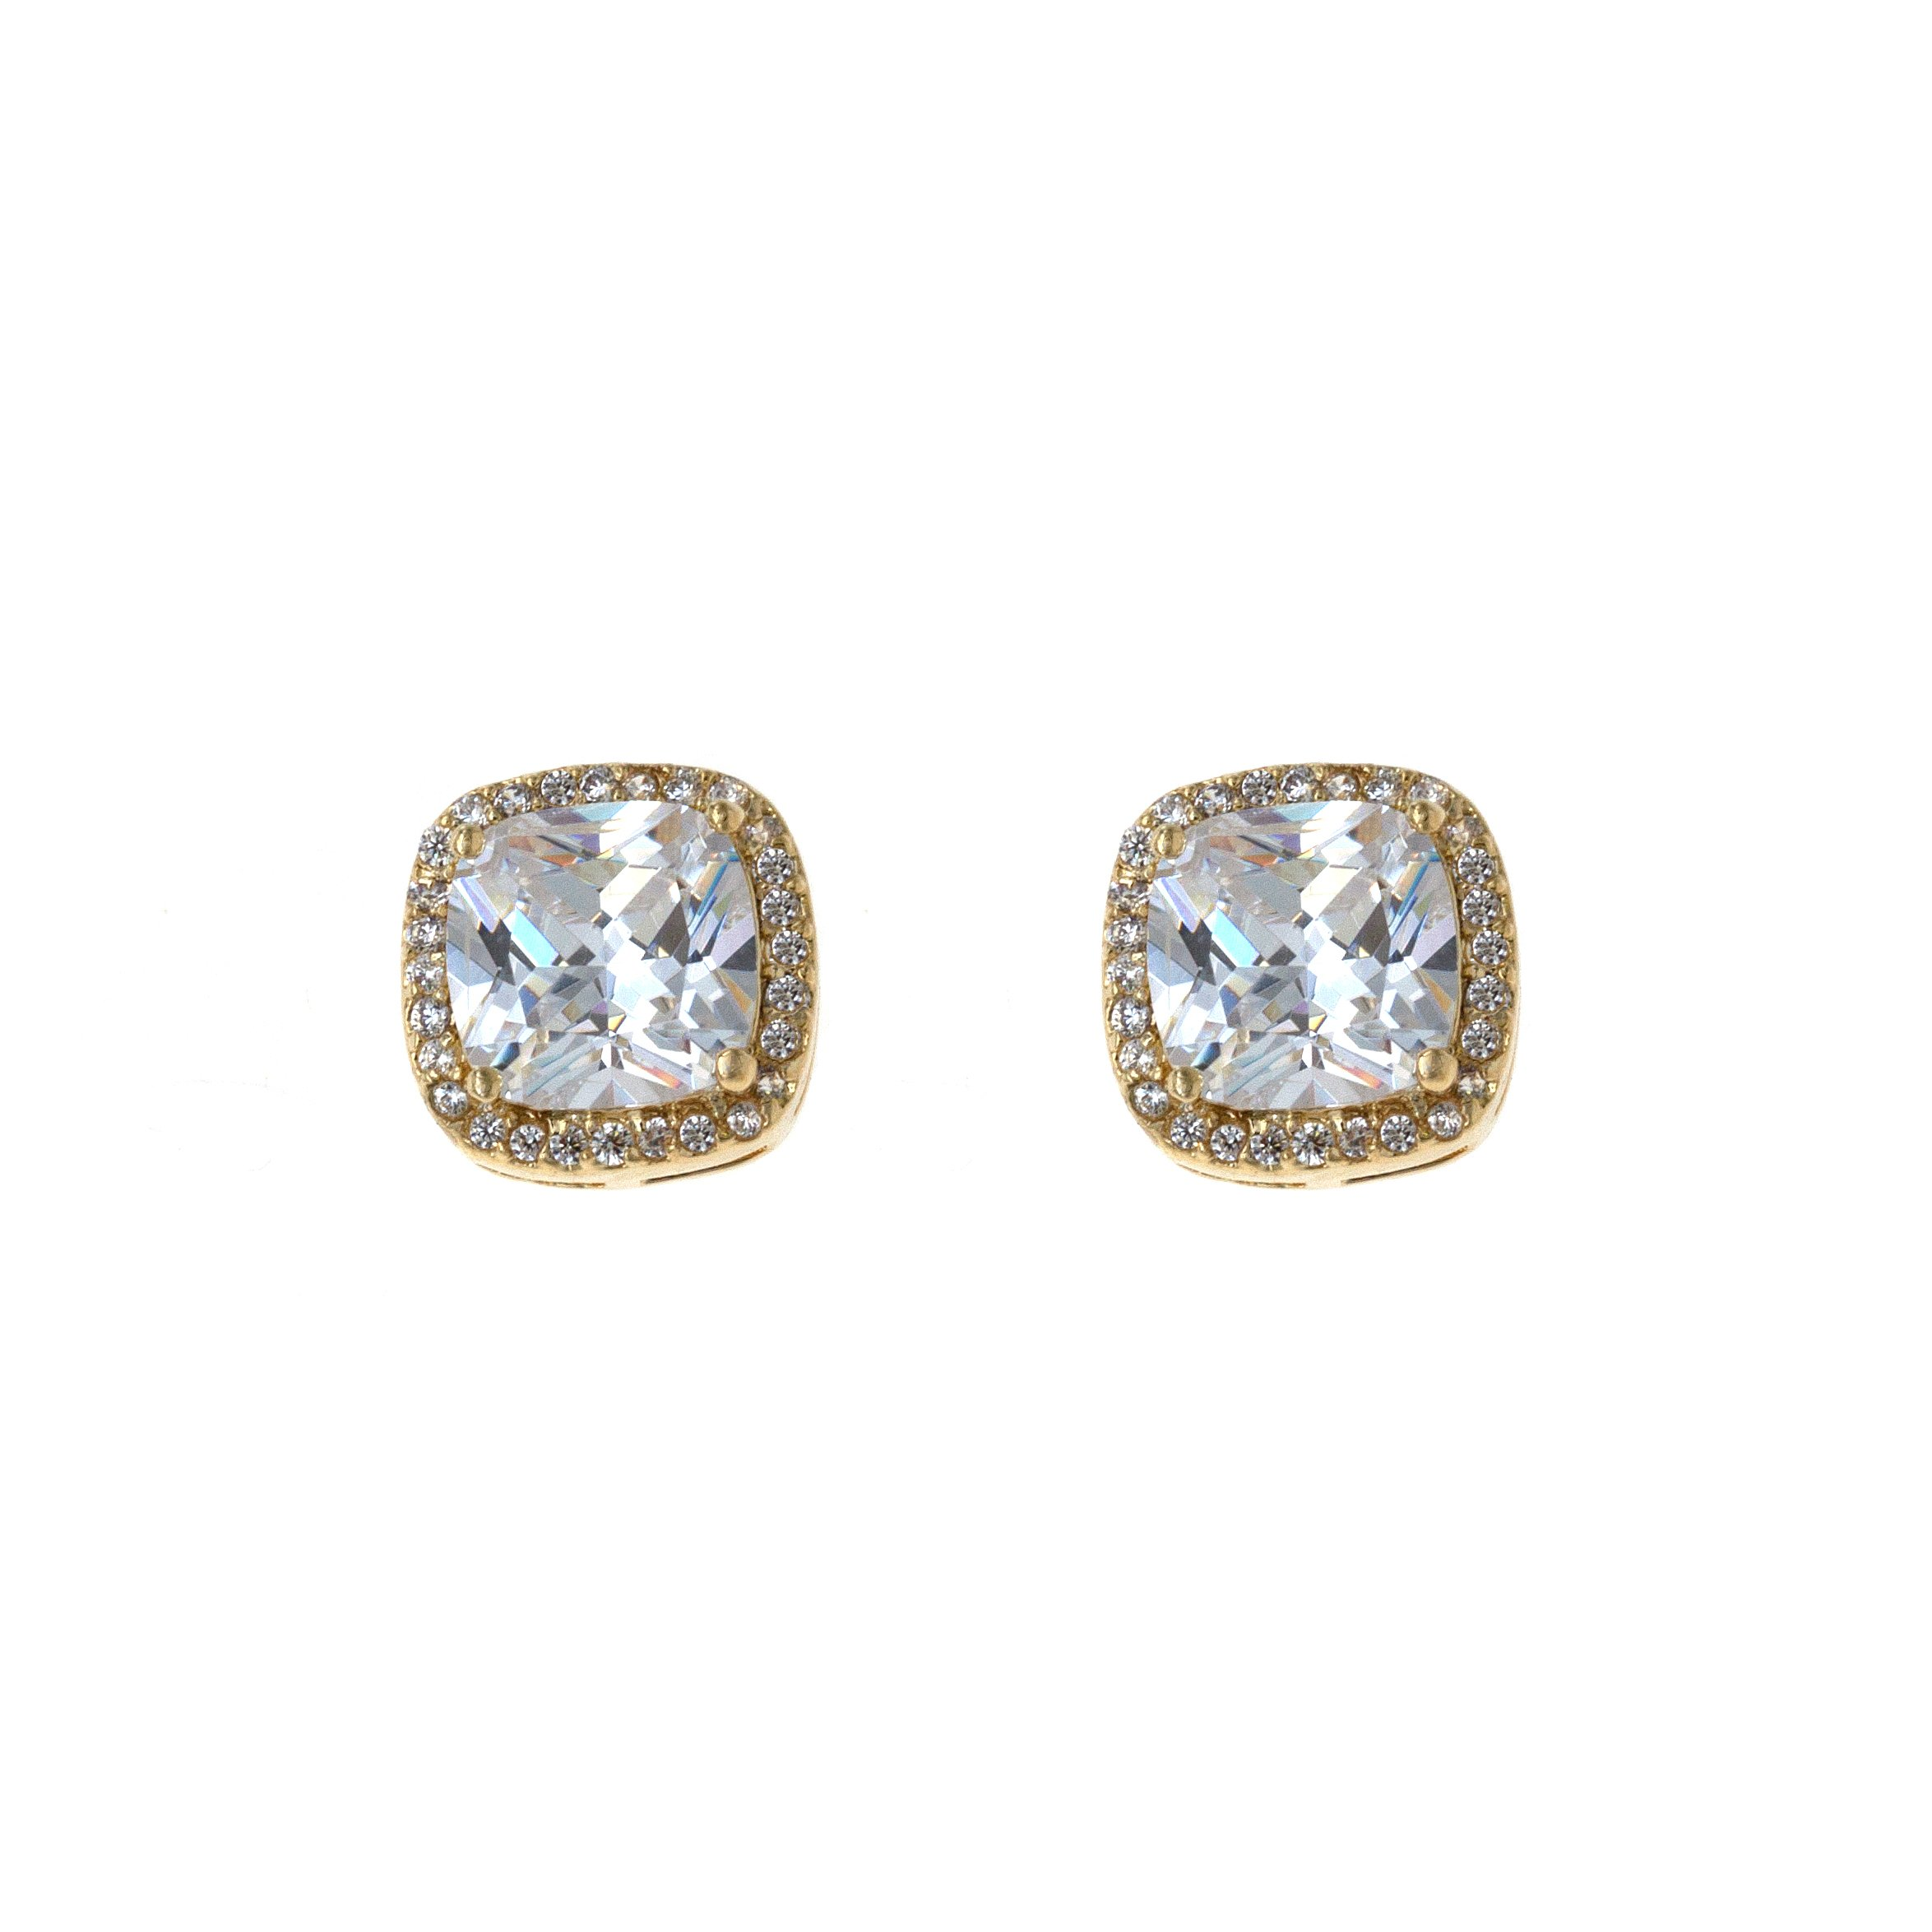 Square Stud Earrings Micro Paved AAA CZ Jewelry Wedding Party Prom For Women (Gold)